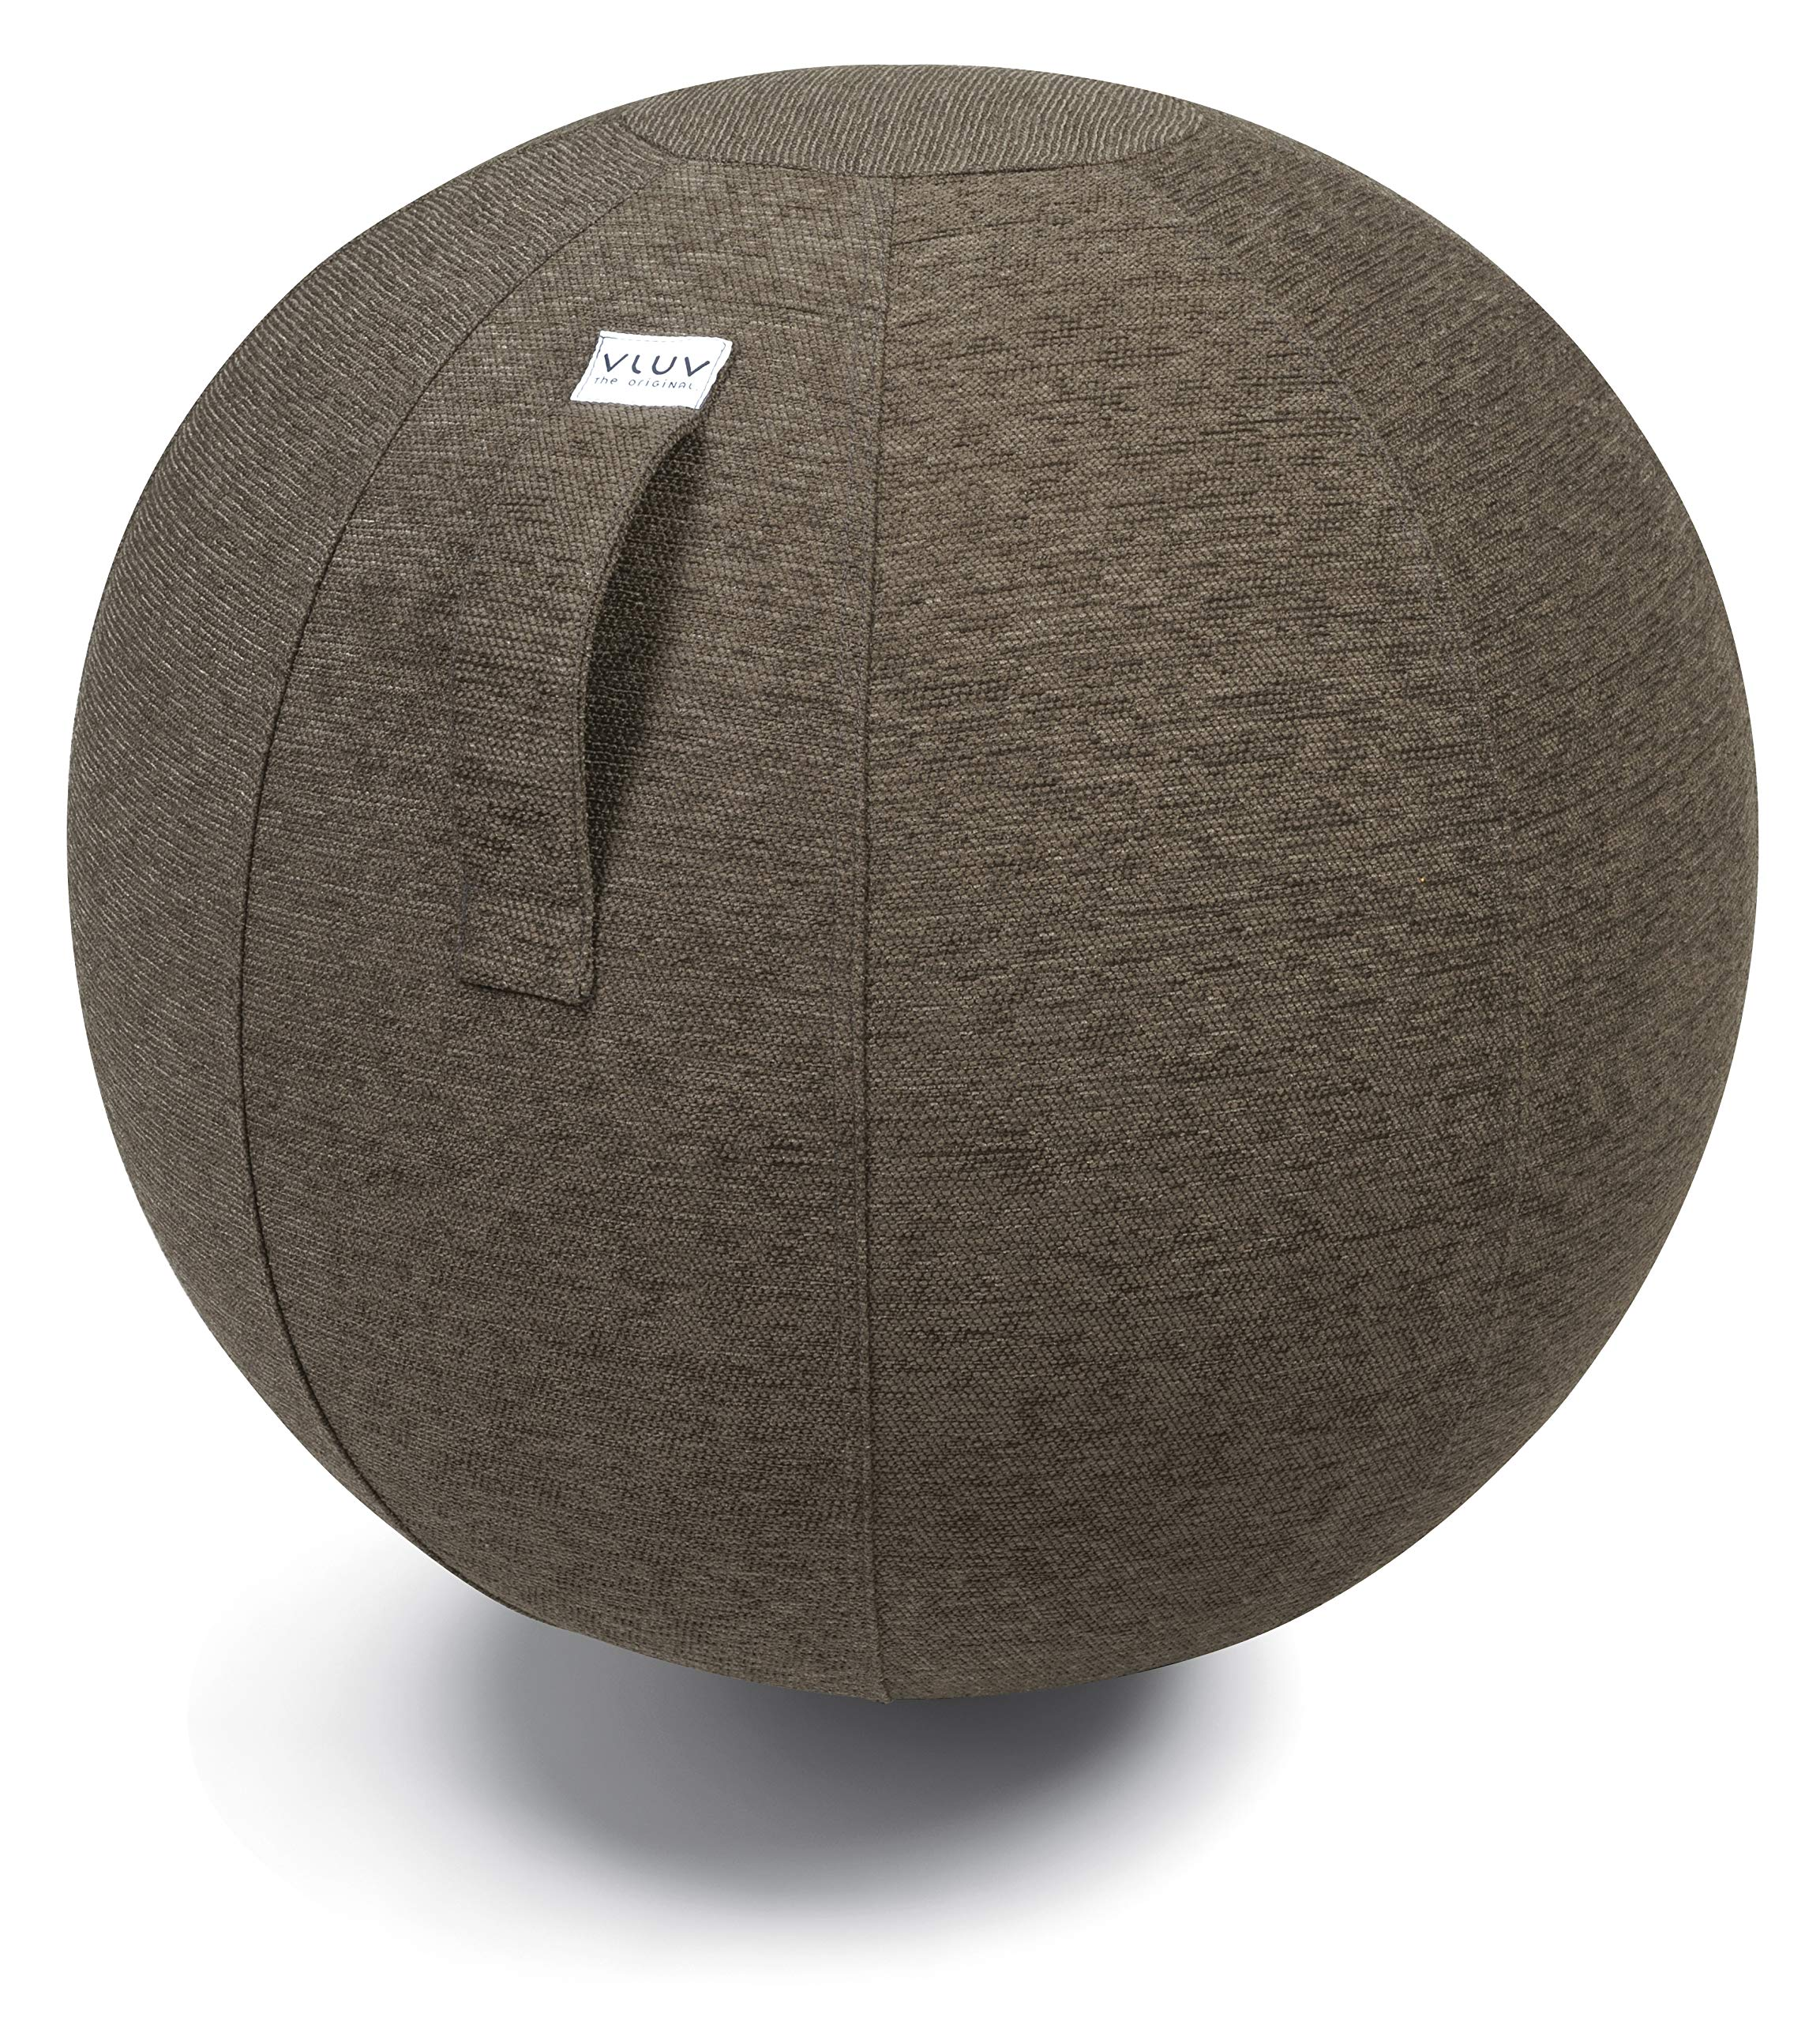 VLUV STOV Premium Quality Self-Standing Sitting Ball with Handle - Home or Office Chair and Exercise Ball for Yoga, Back Stretching, or Gym- Upholstery Fabric Stability Ball (Greige, 29.5'')